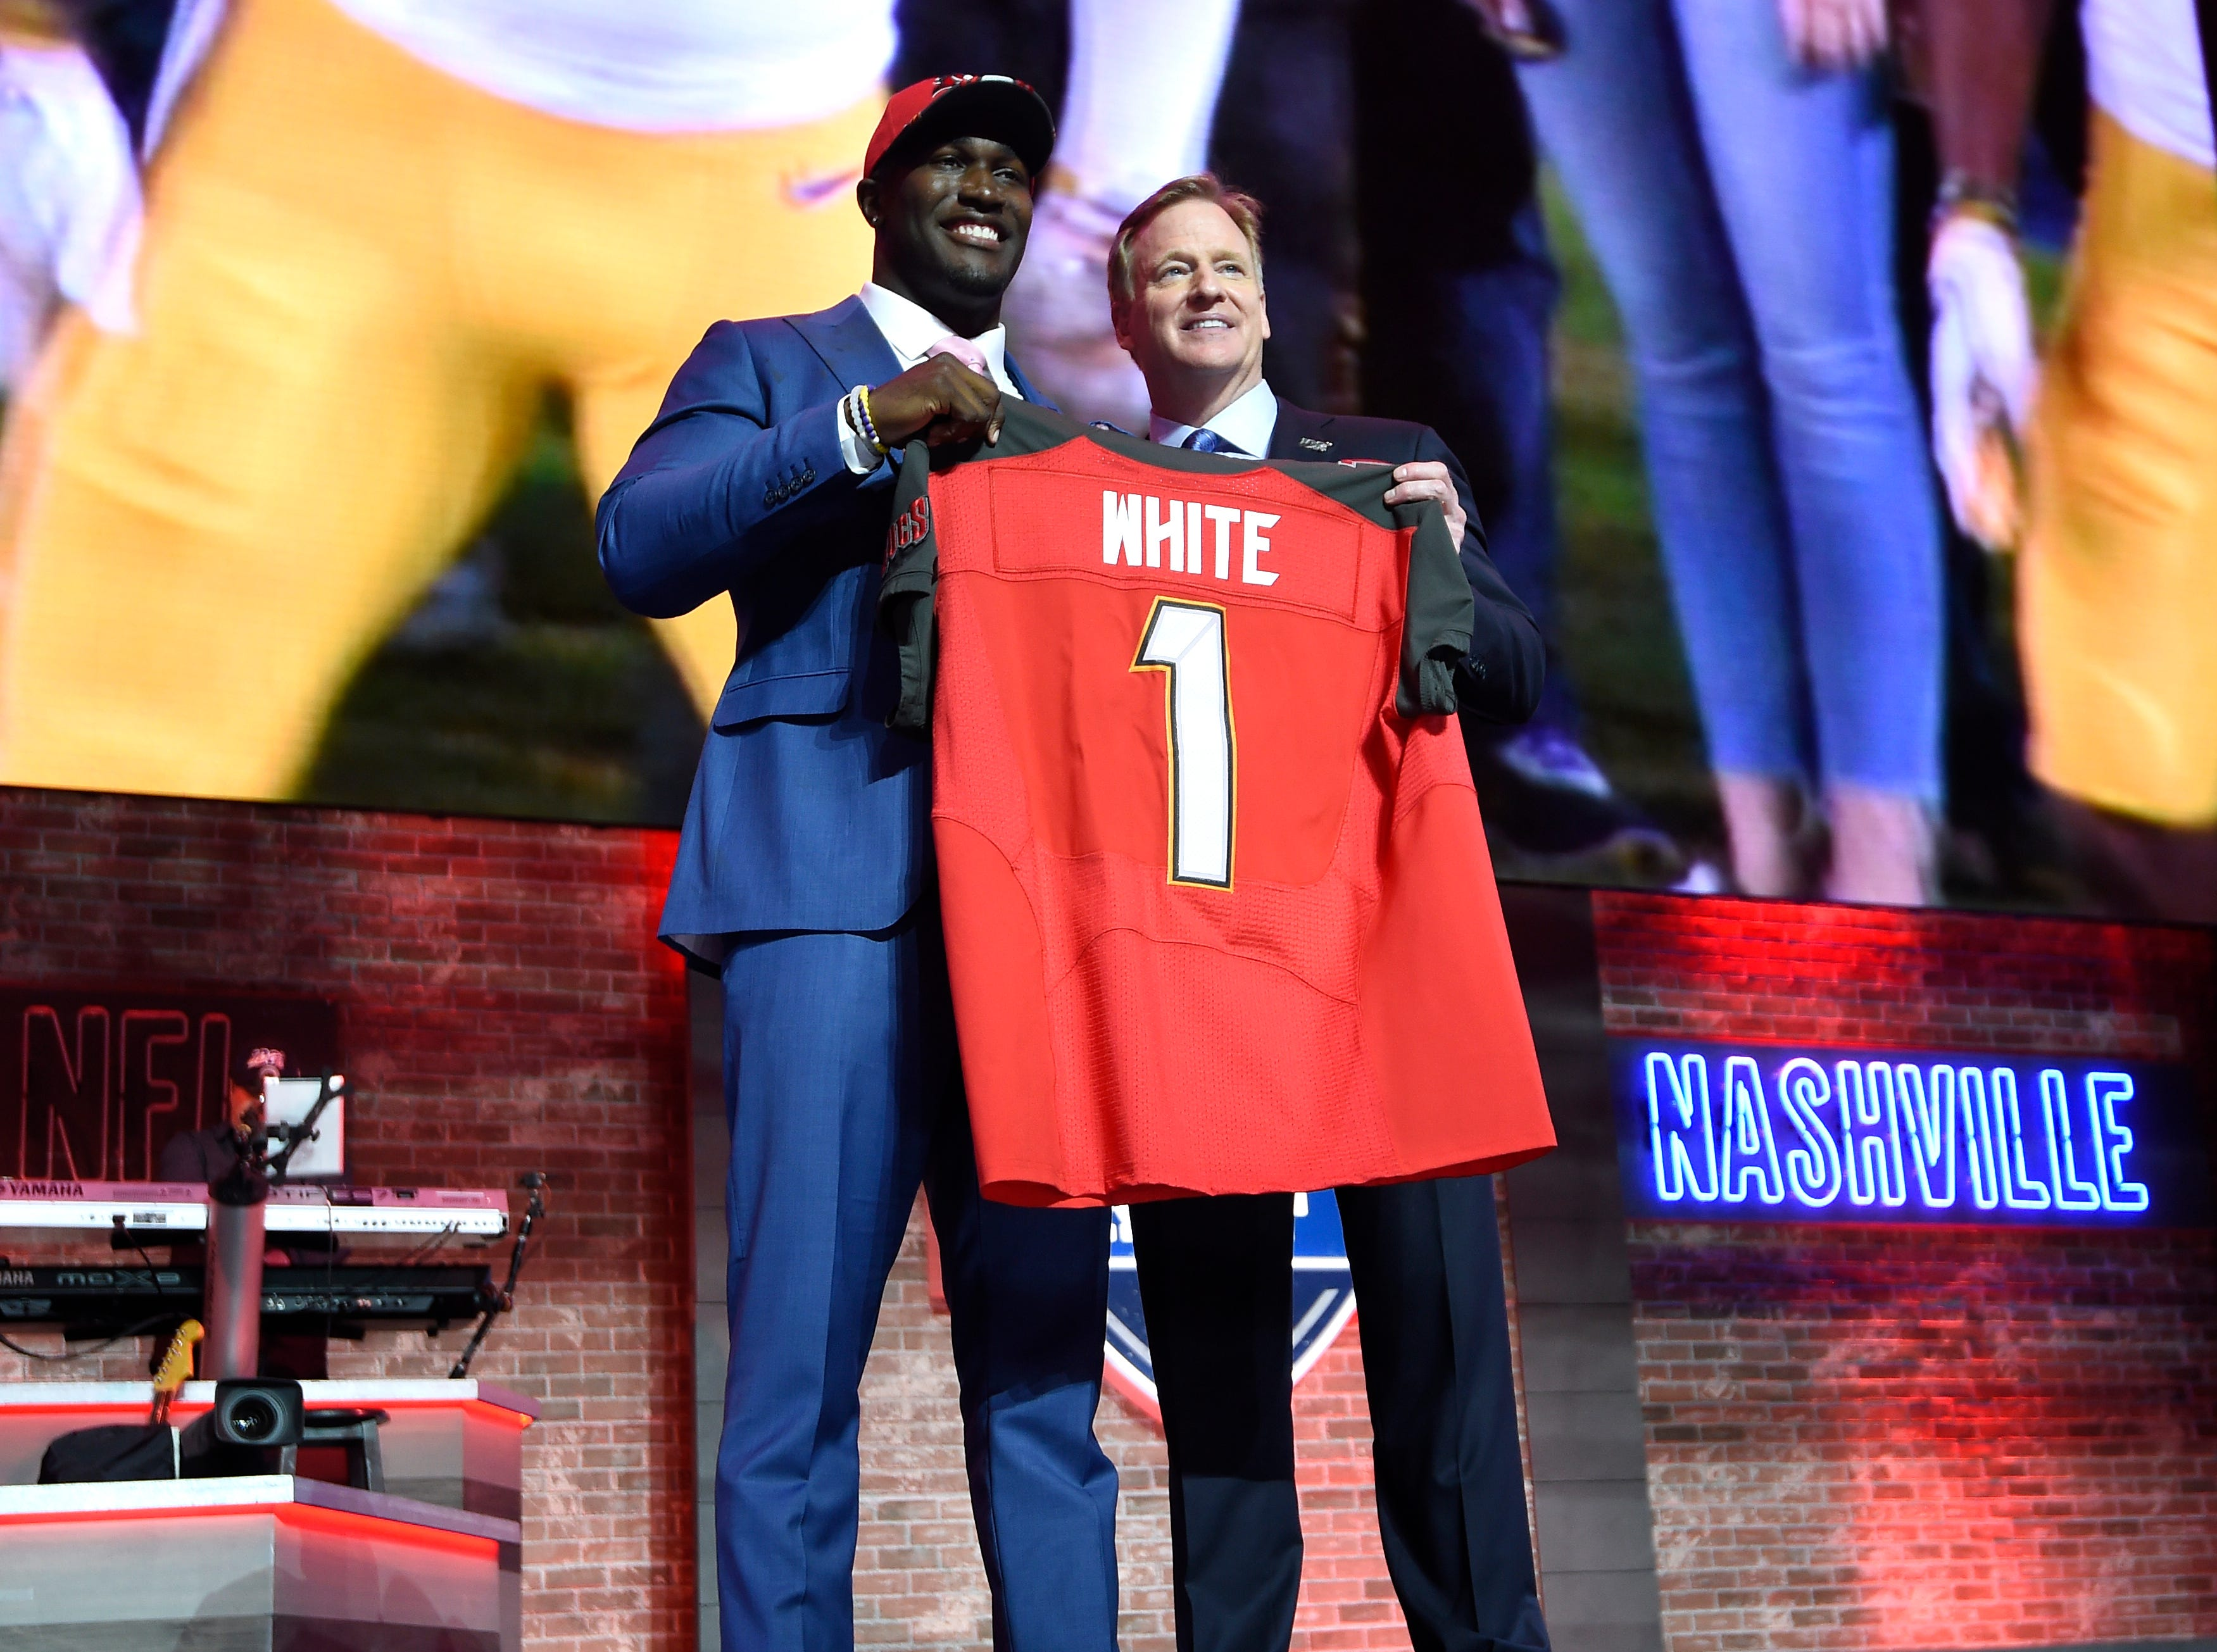 Devin White stands with his new Tampa Bay Buccaneers jersey and NFL Commissioner Roger Goodell during the first round of the NFL Draft Thursday, April 25, 2019, in Nashville, Tenn.